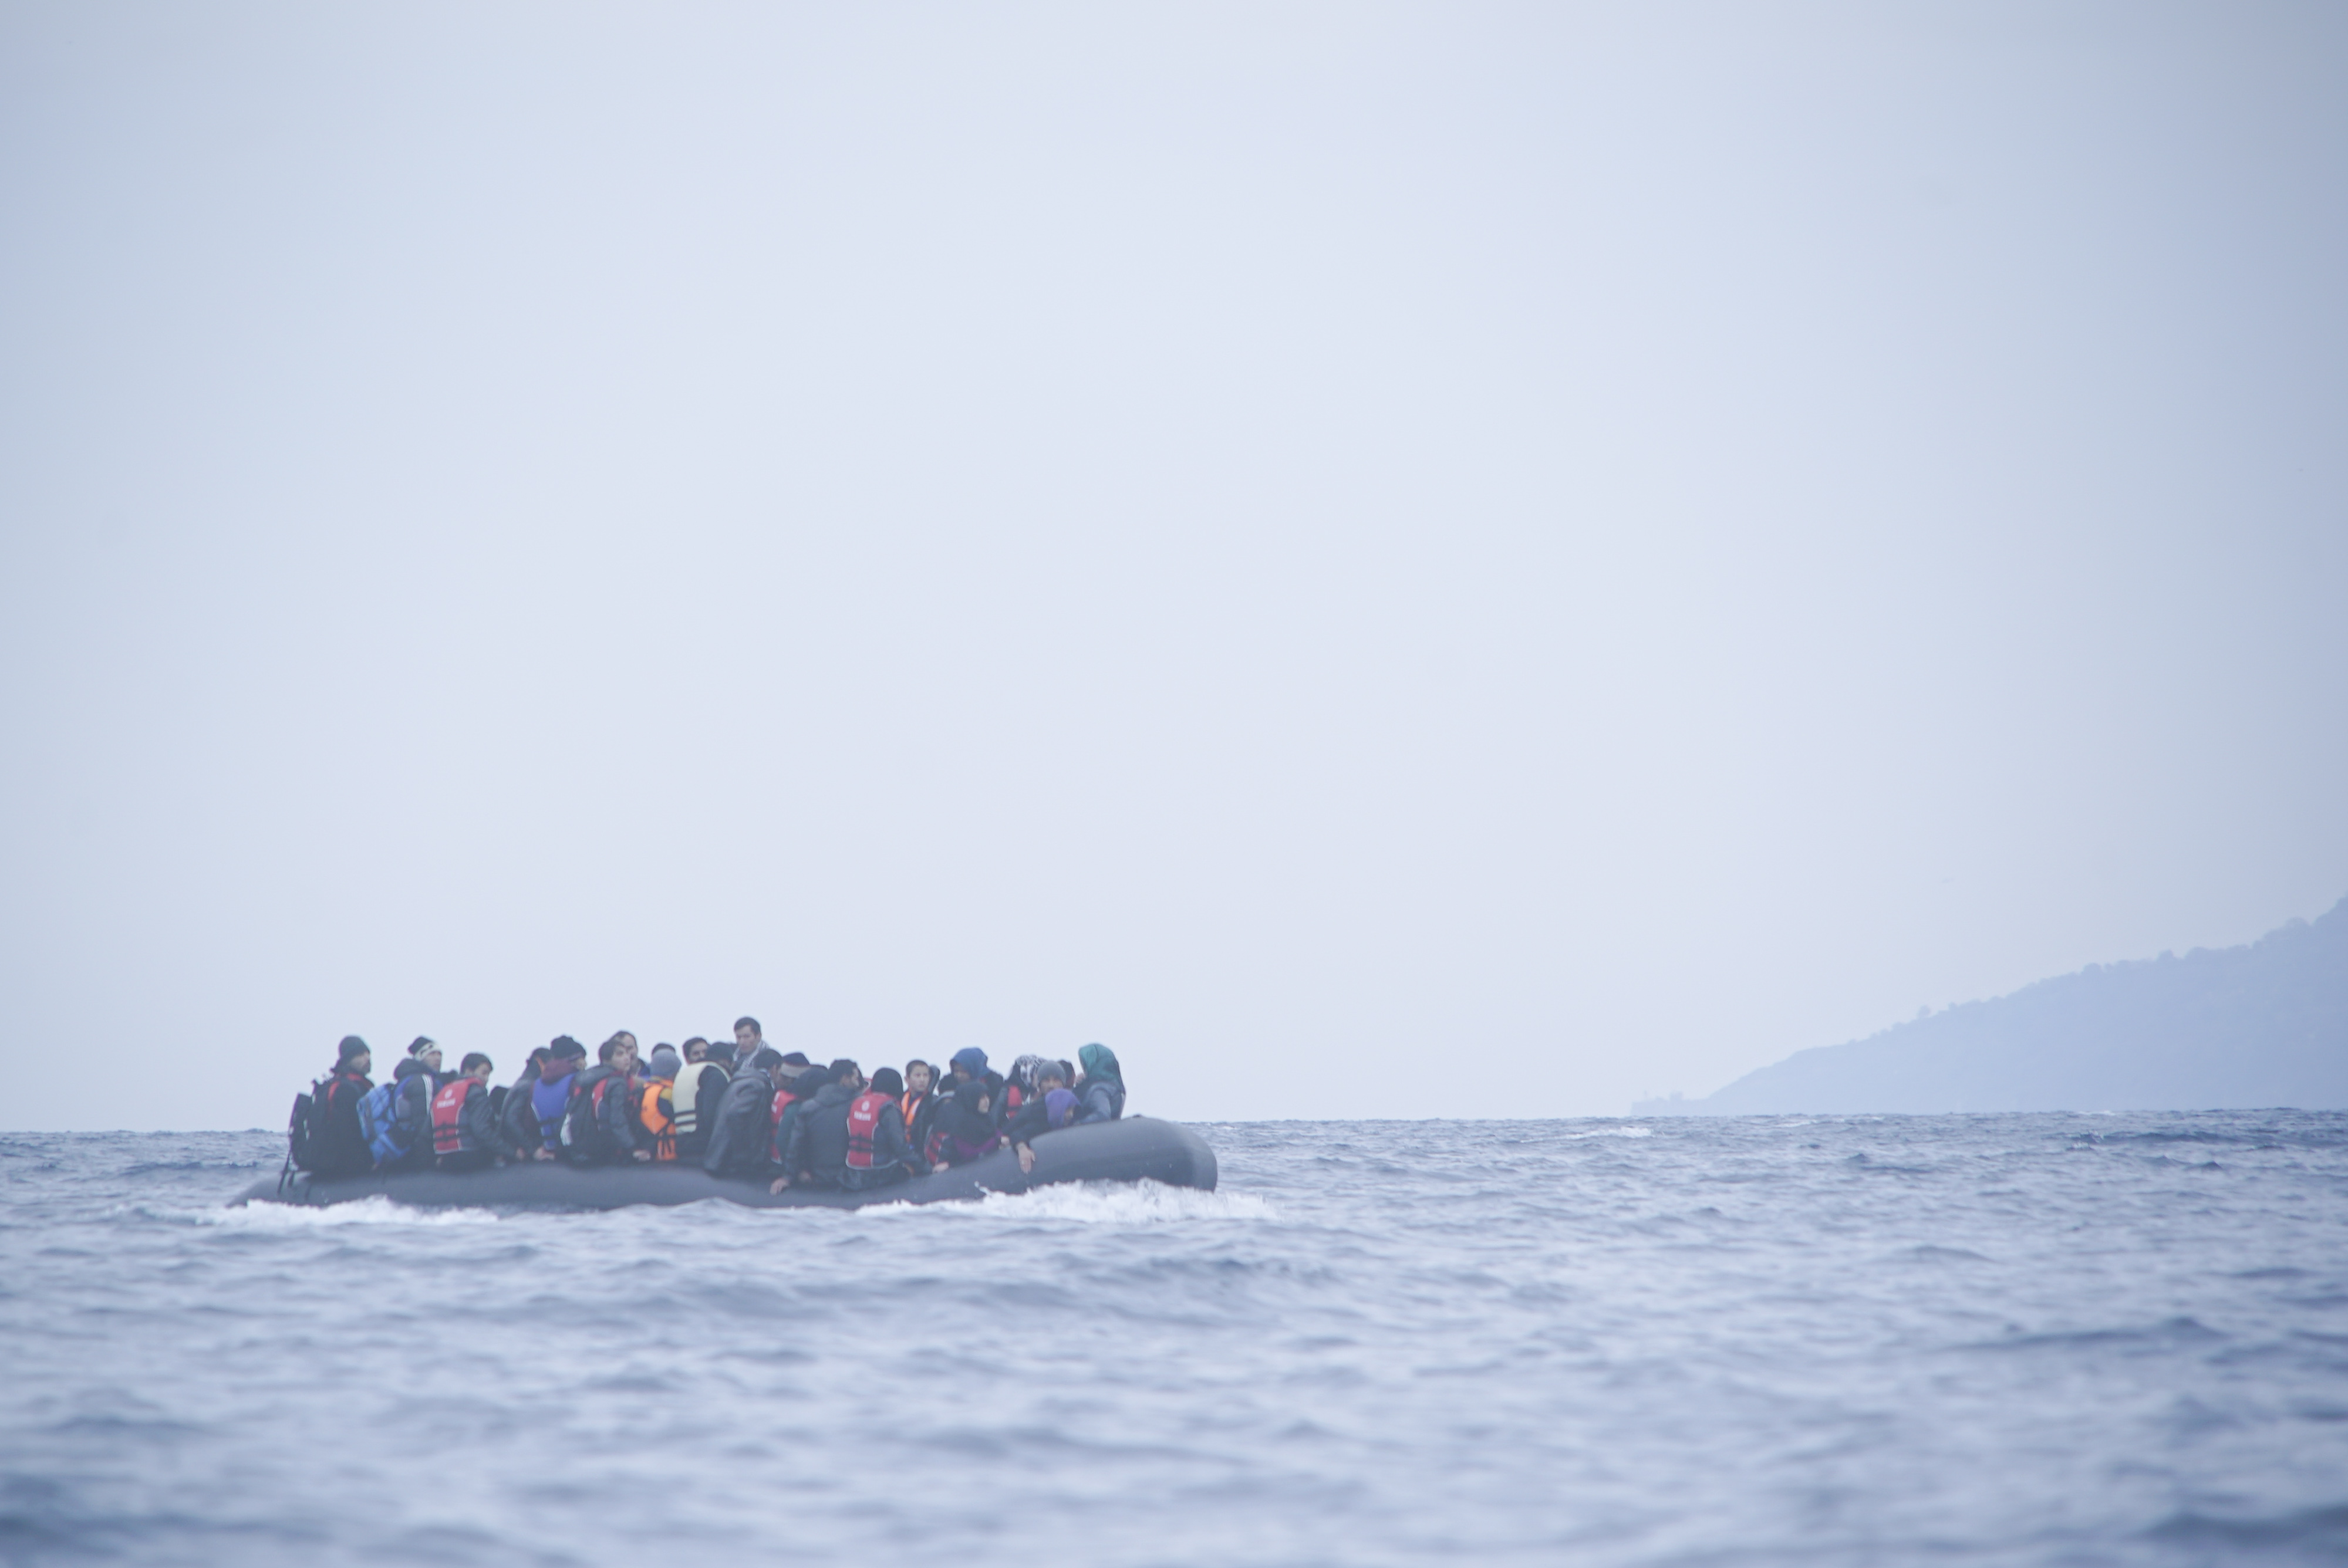 Refugee crisis in Mediterranean is the result of worst living conditions in Africa and the Midle East